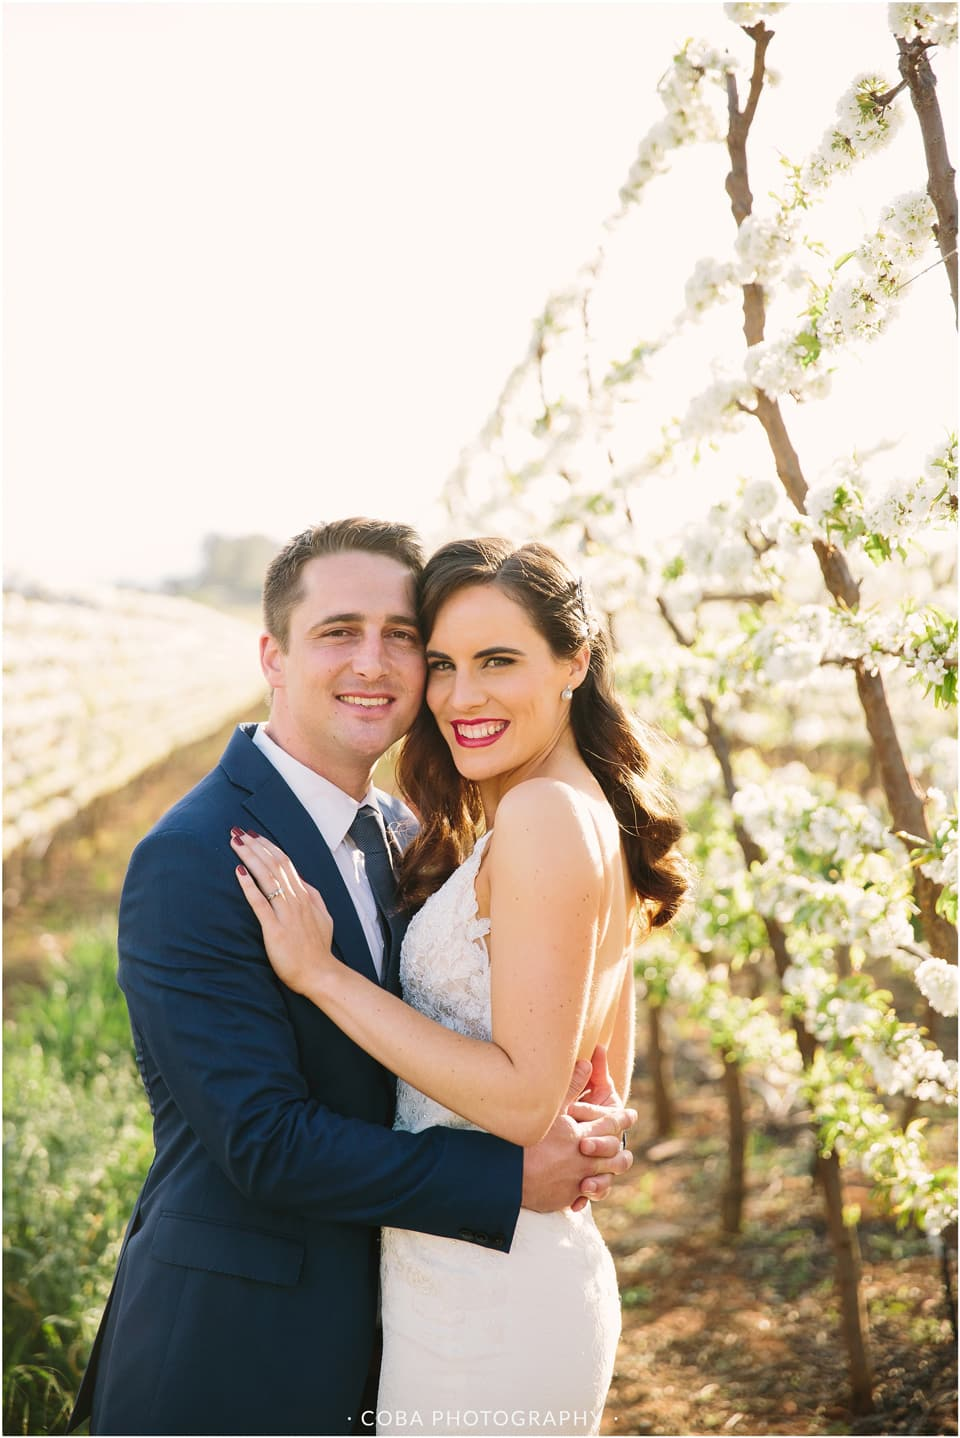 morne-rochelle-coba-photography-wedding-207